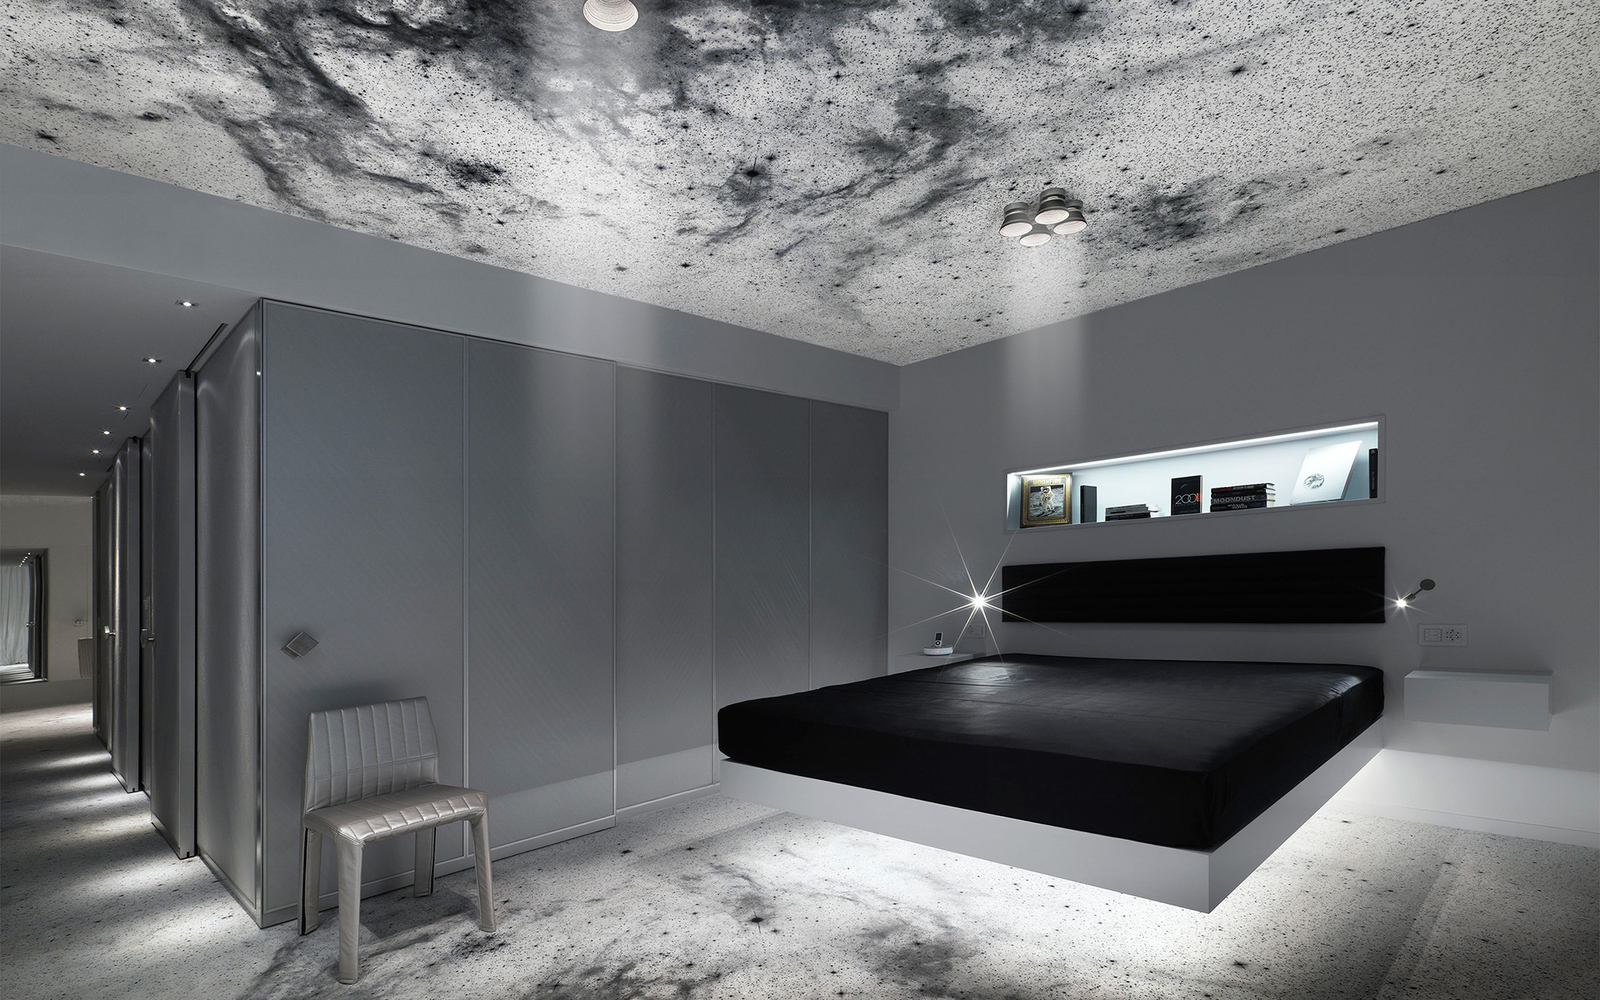 Star Wars Themed Bedroom Seven Space Themed Hotels That Are Out Of This World